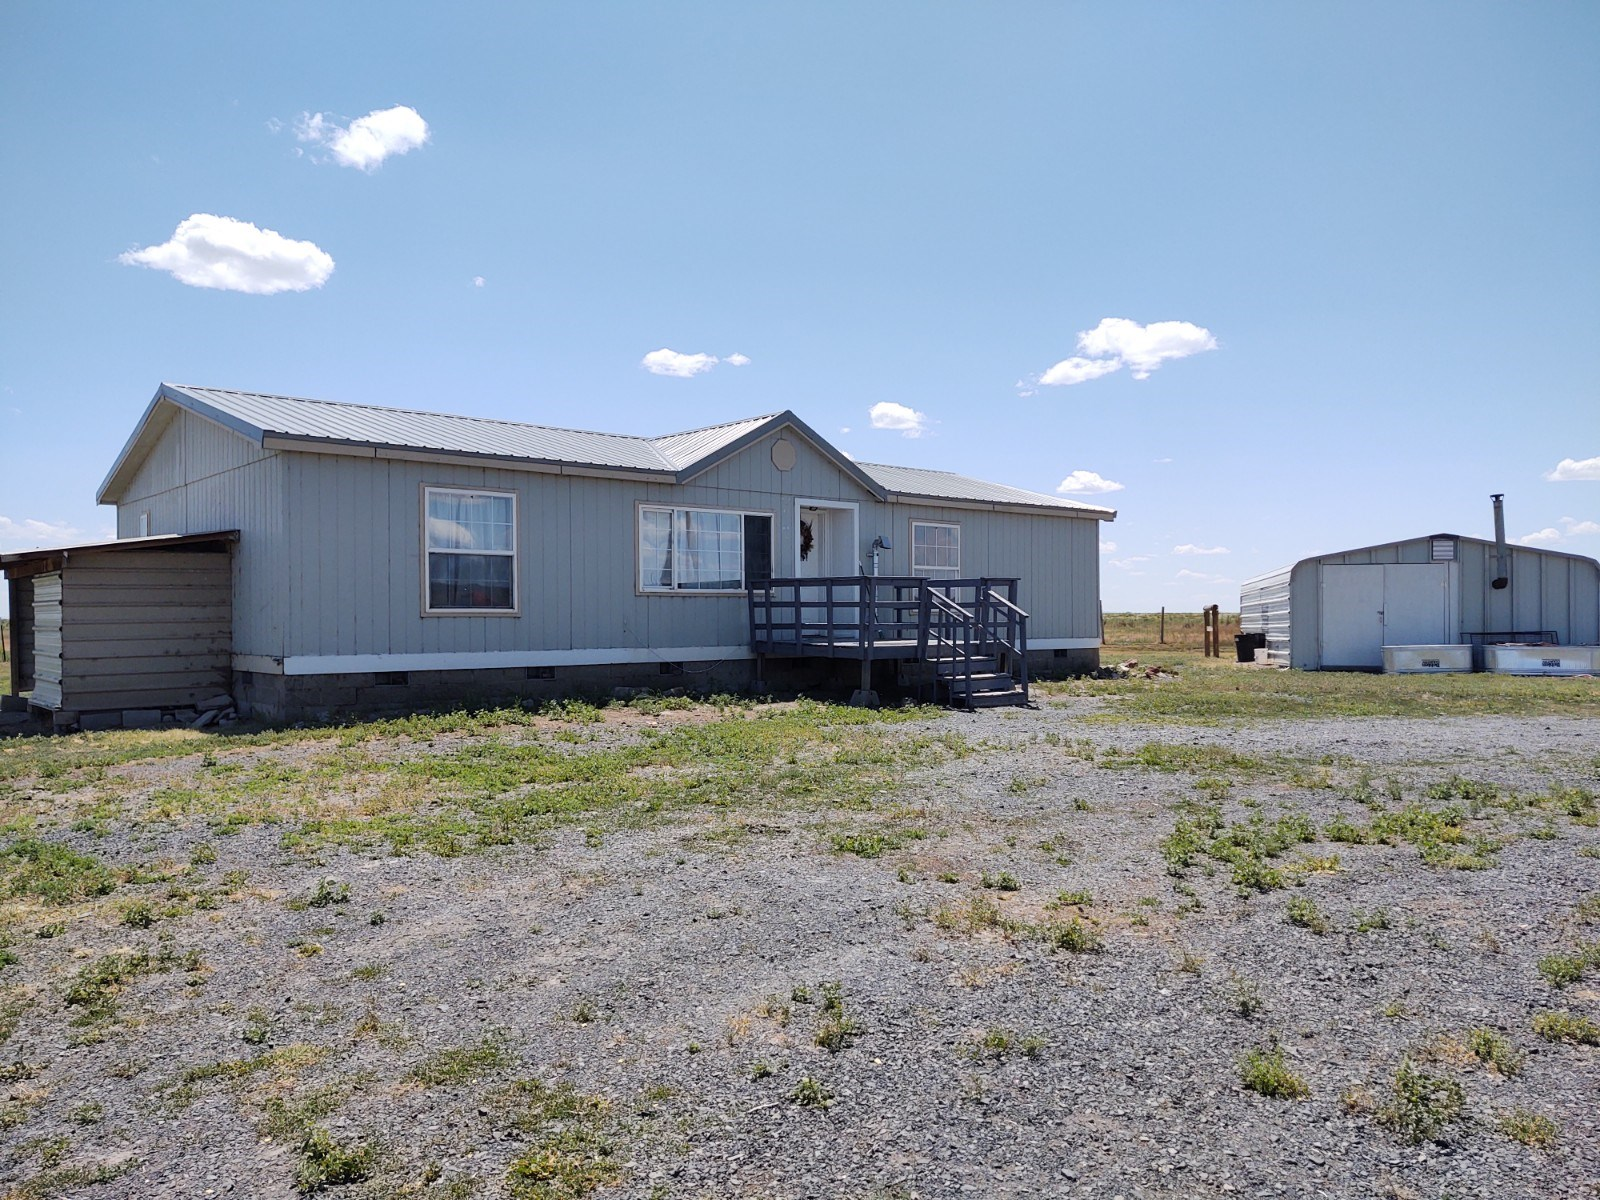 13 MILES EAST OF BURNS OR - 19.60 ACRES W/ 3 BD, 2 BTH HOME